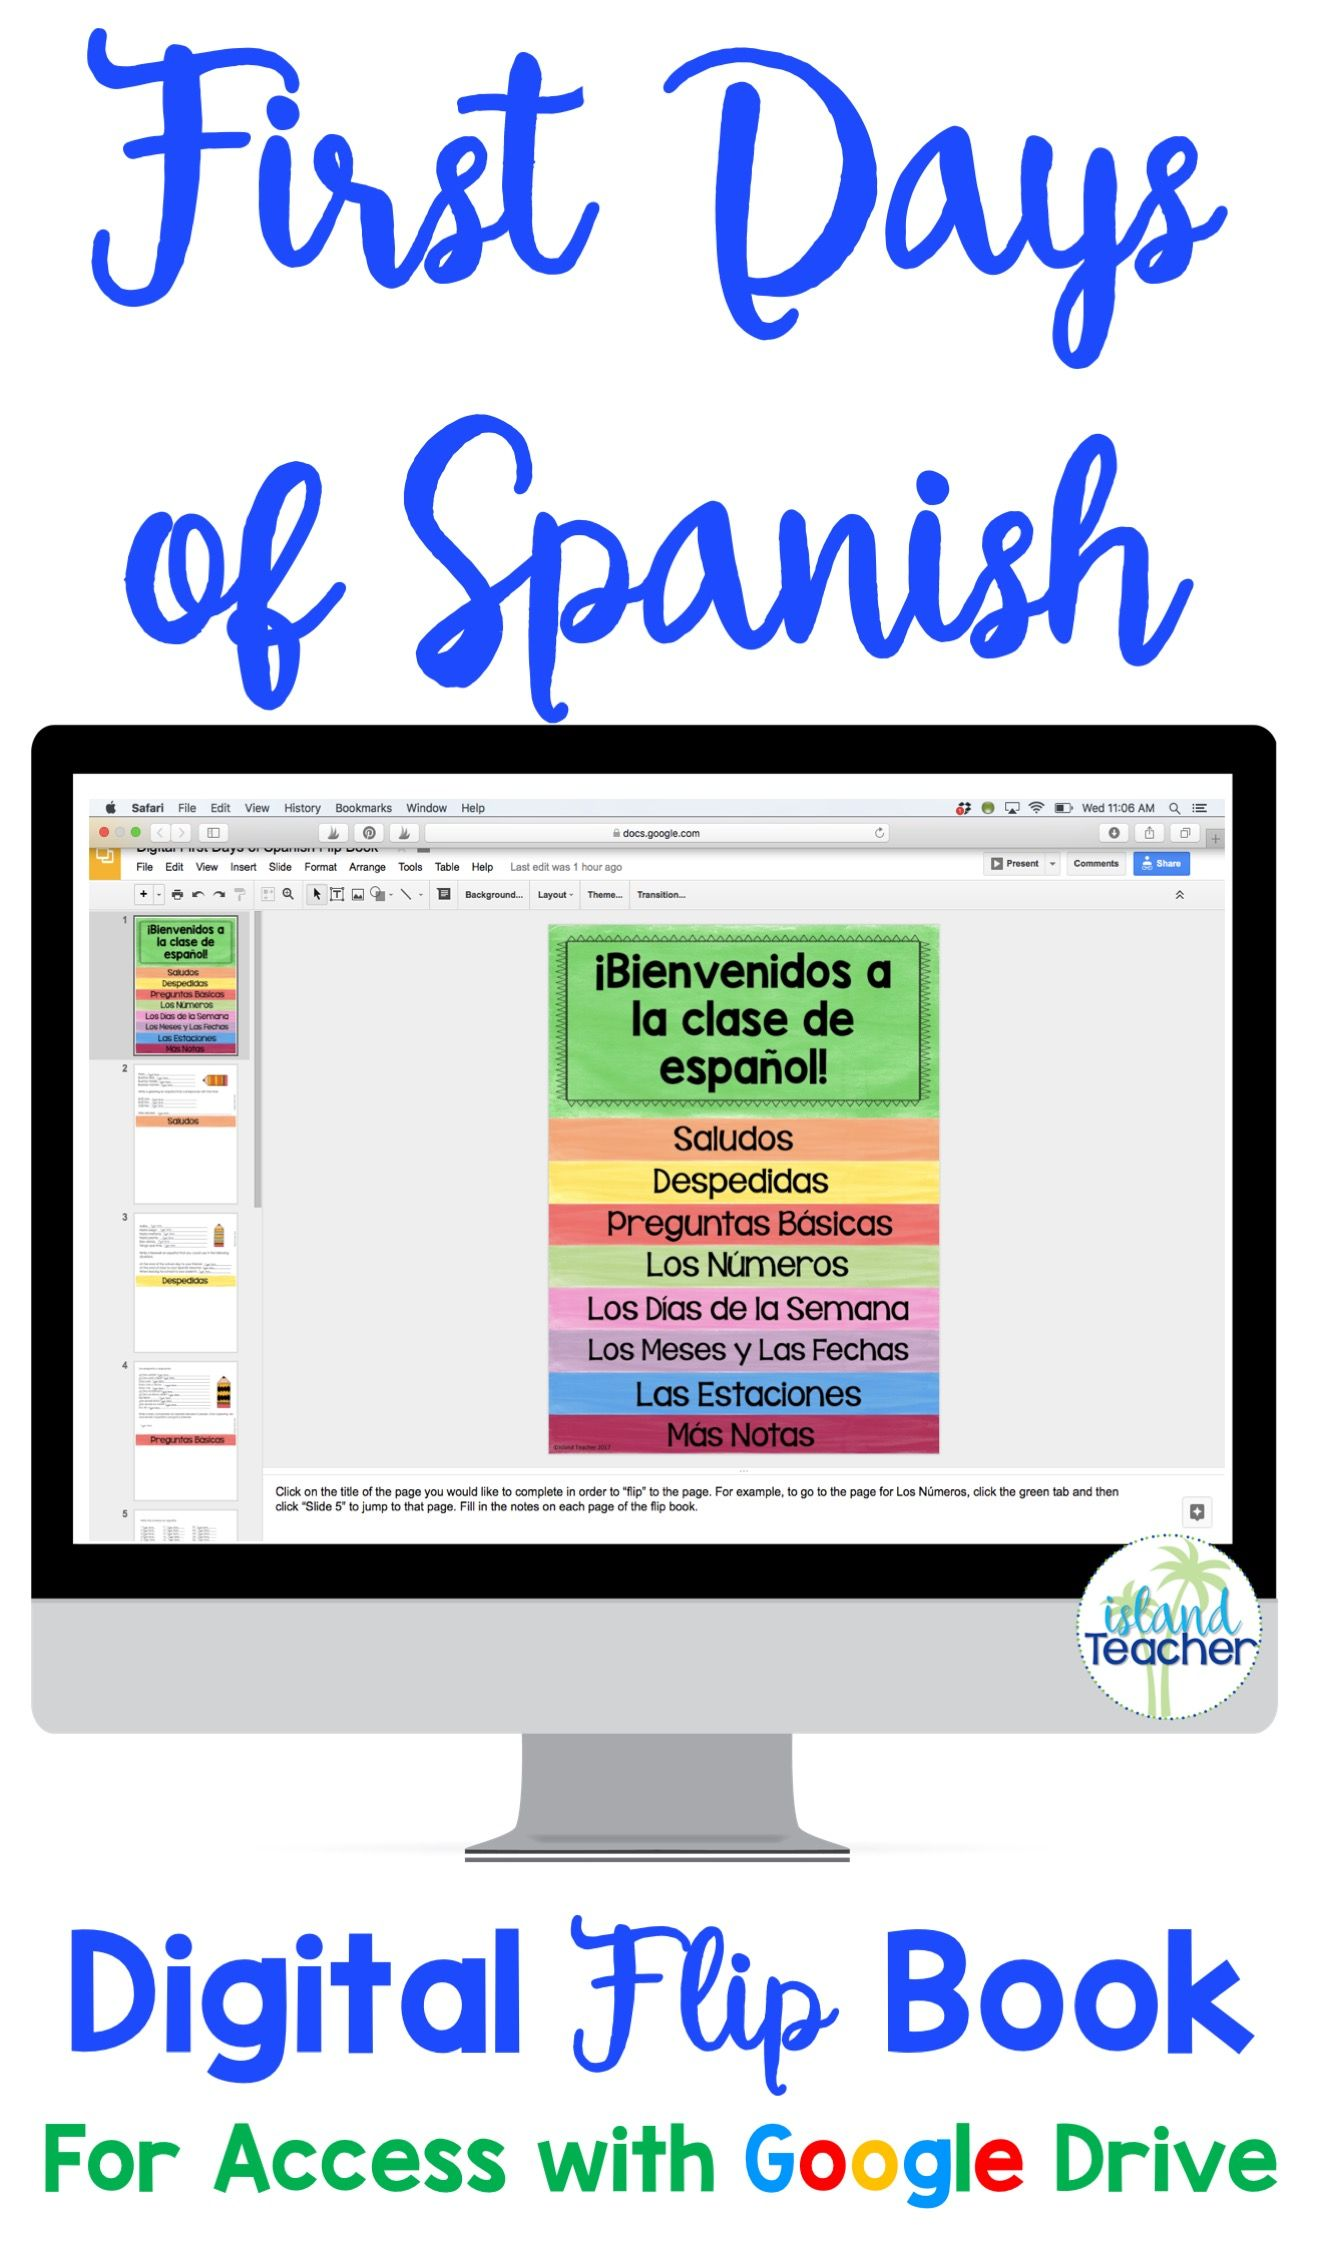 Introduce Or Review The Basics Of Spanish With This